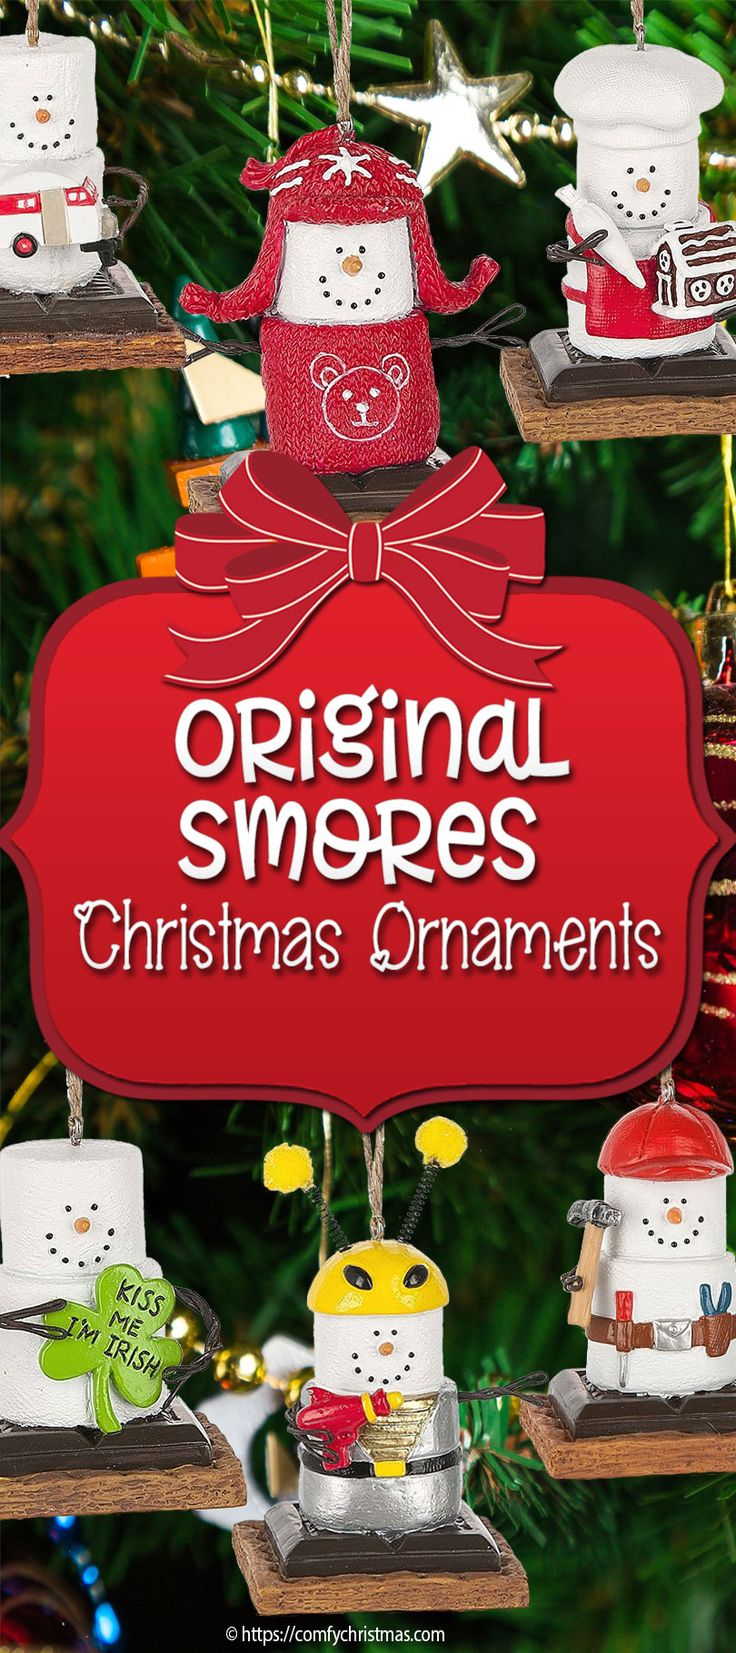 The Original Smores Ornaments for Christmas are super cute unique ornaments that are sure to bring a smile to your face!Be sure to check out all the adorable smore Christmas ornaments!